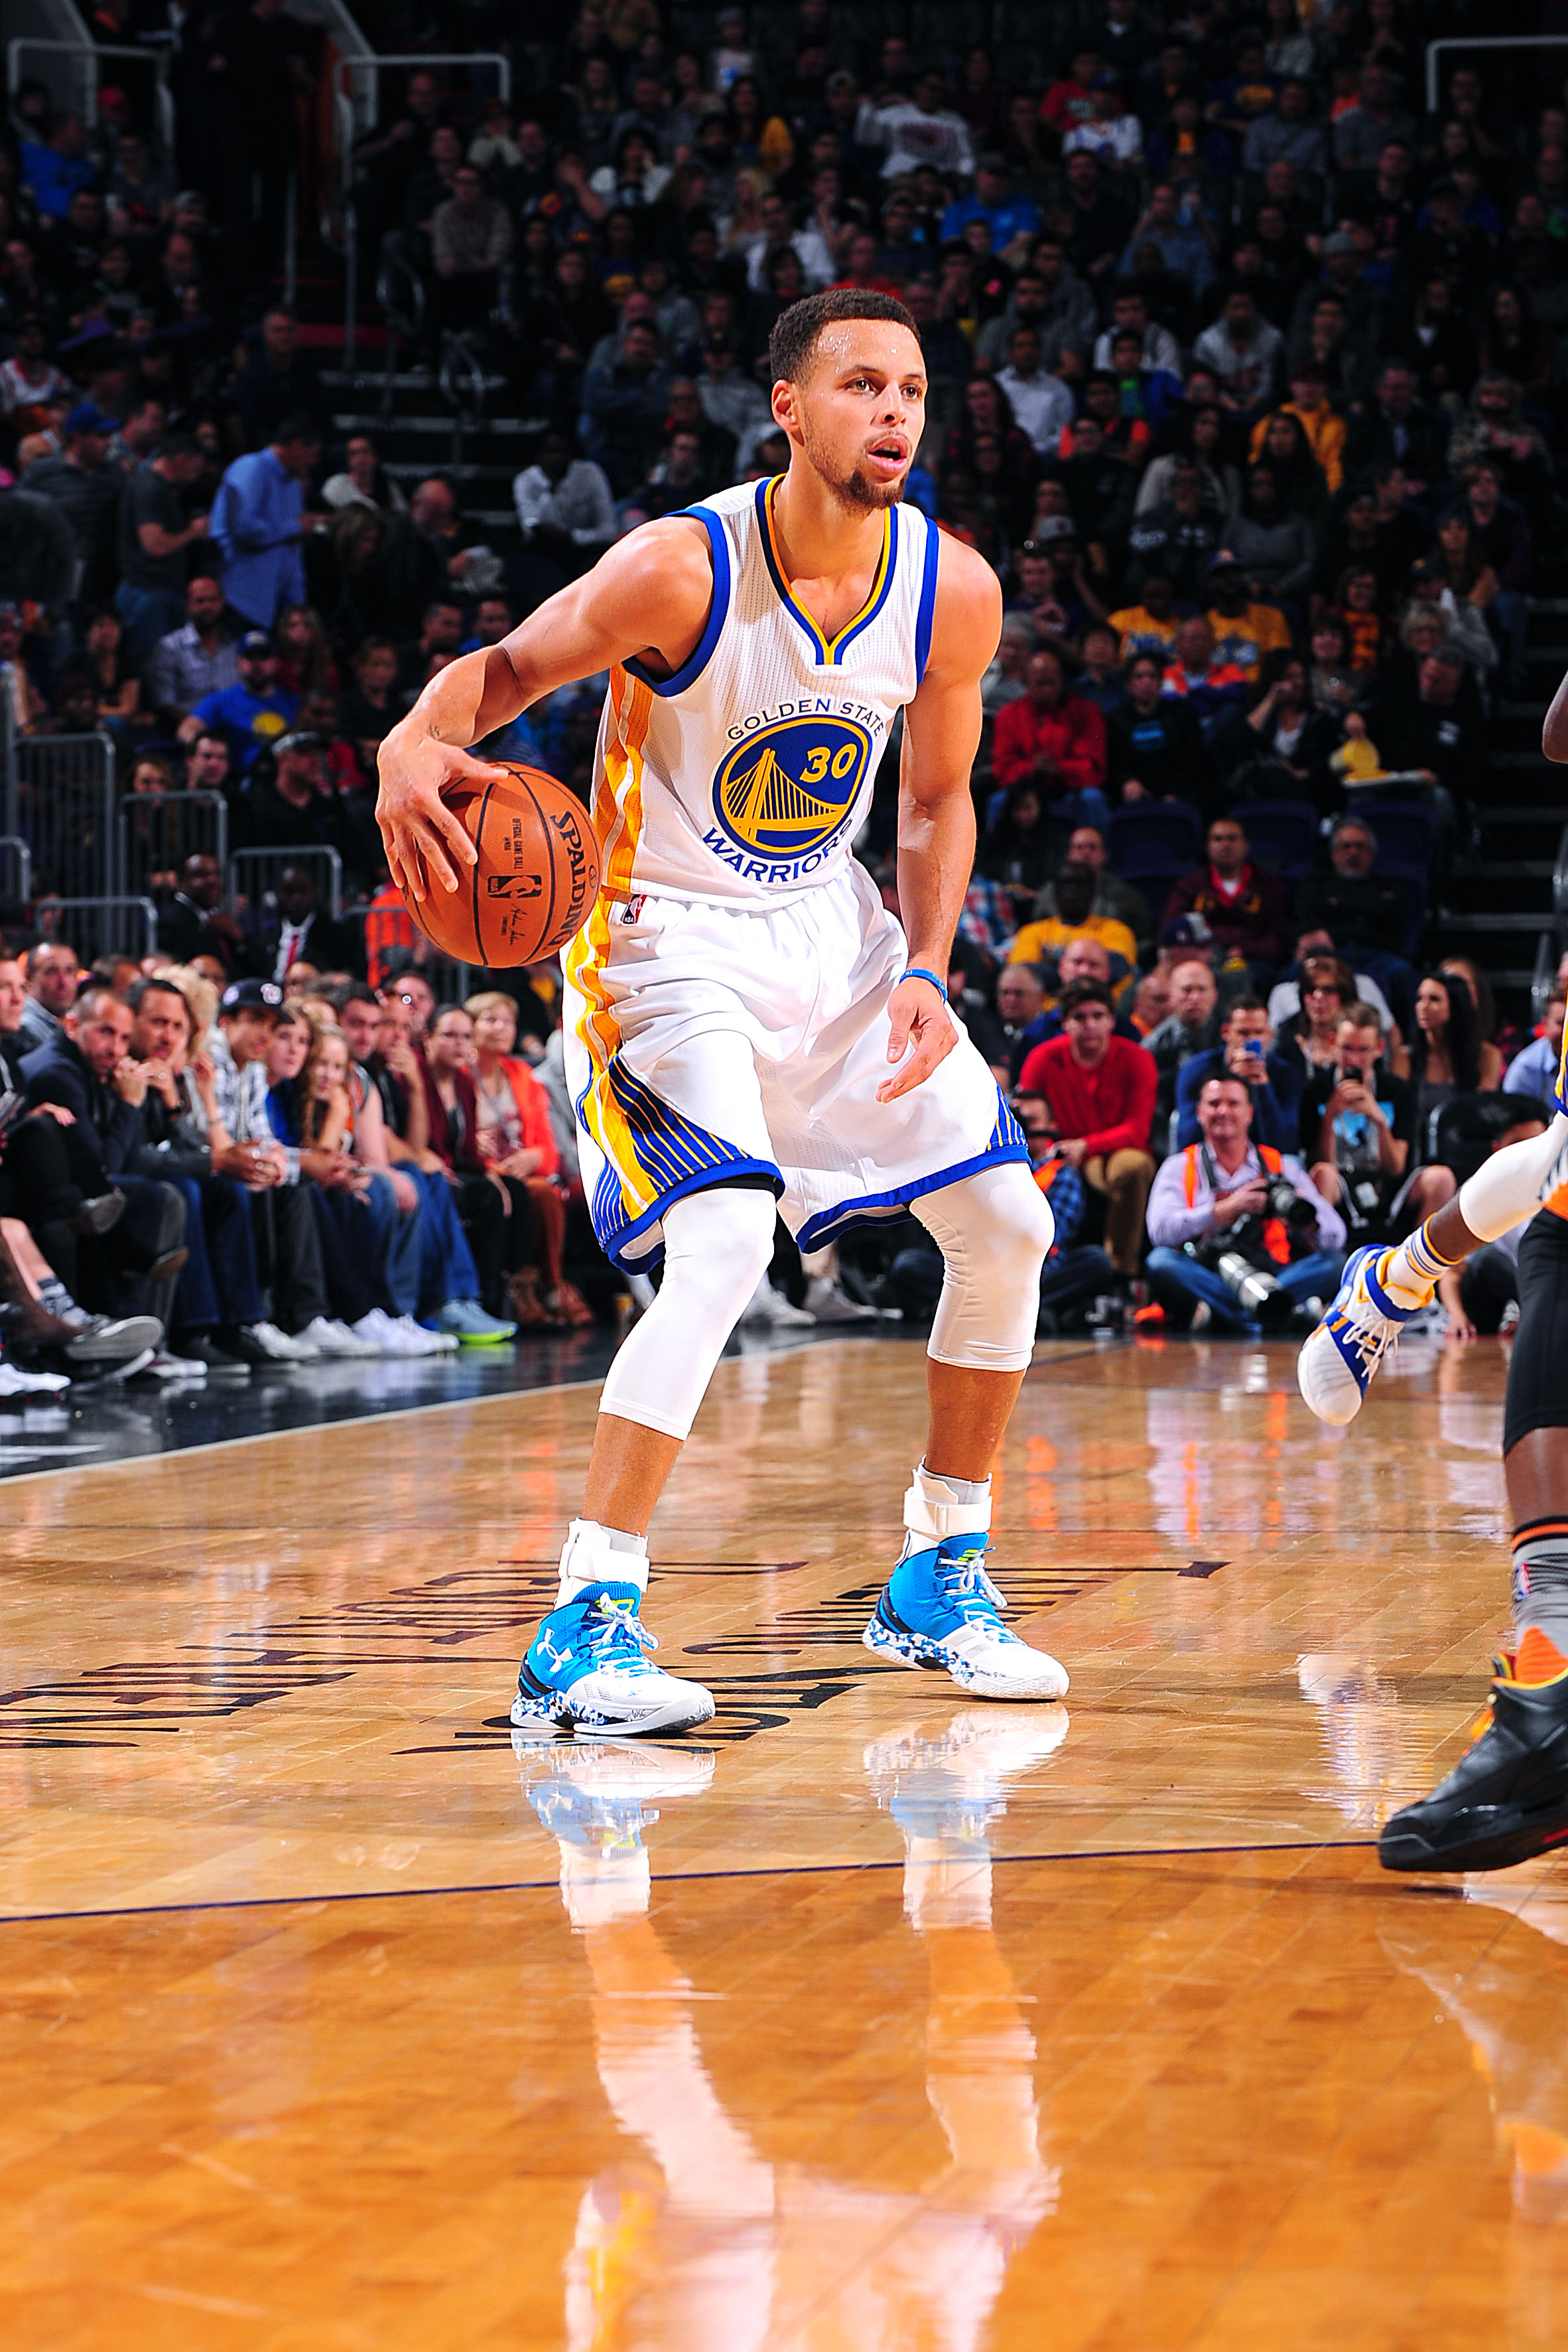 PHOENIX, AZ - NOVEMBER 27: Stephen Curry #30 of the Golden State Warriors handles the ball during the game against the Phoenix Suns on November 27, 2015 at U.S. Airways Center in Phoenix, Arizona. (Photo by Barry Gossage/NBAE via Getty Images)